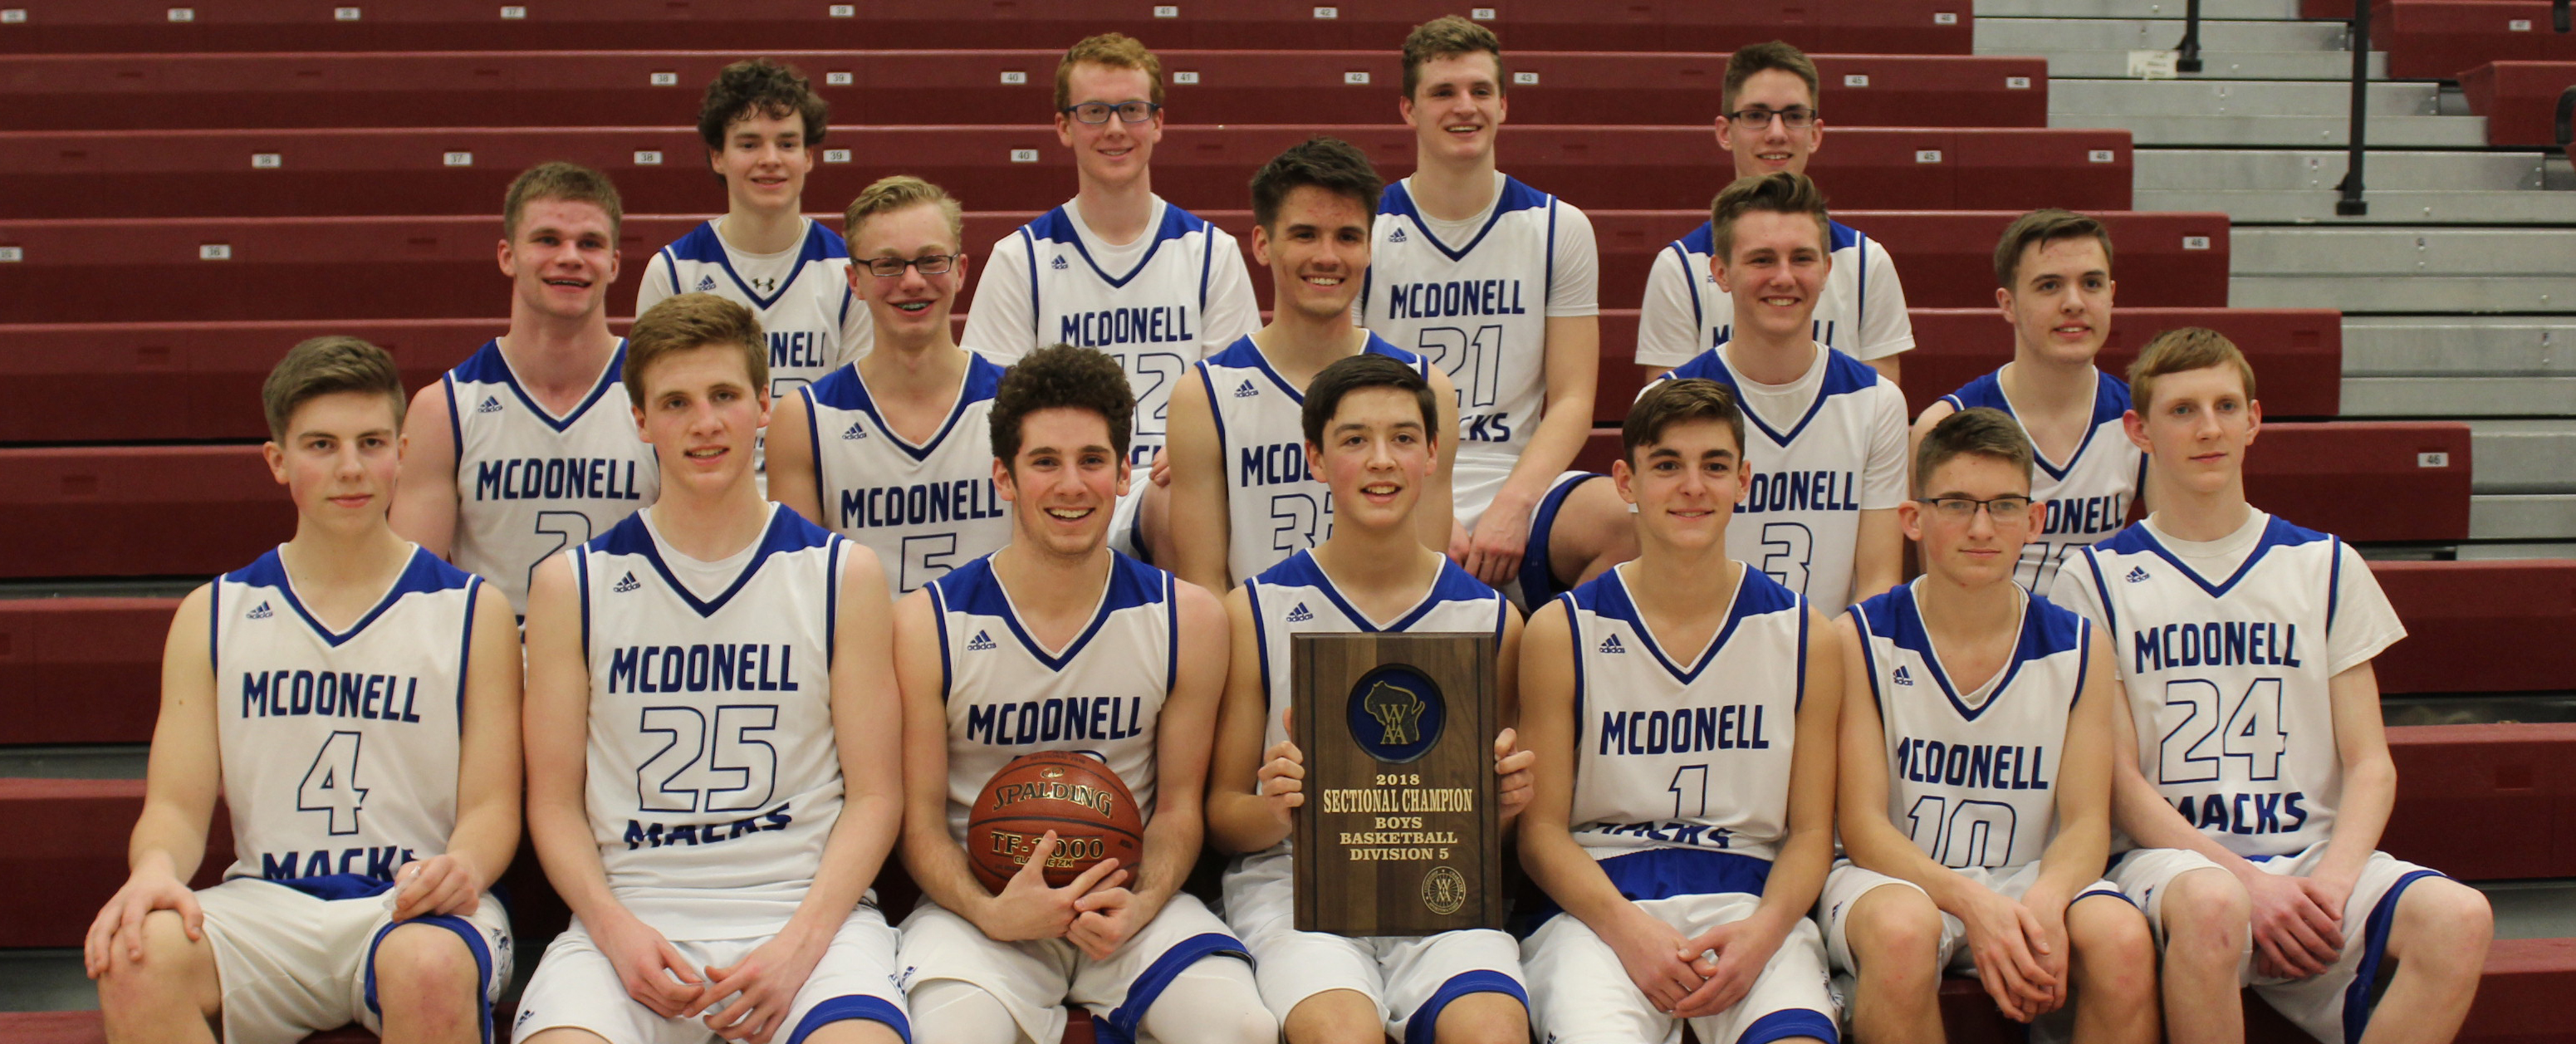 McDonell Boys heading to state!